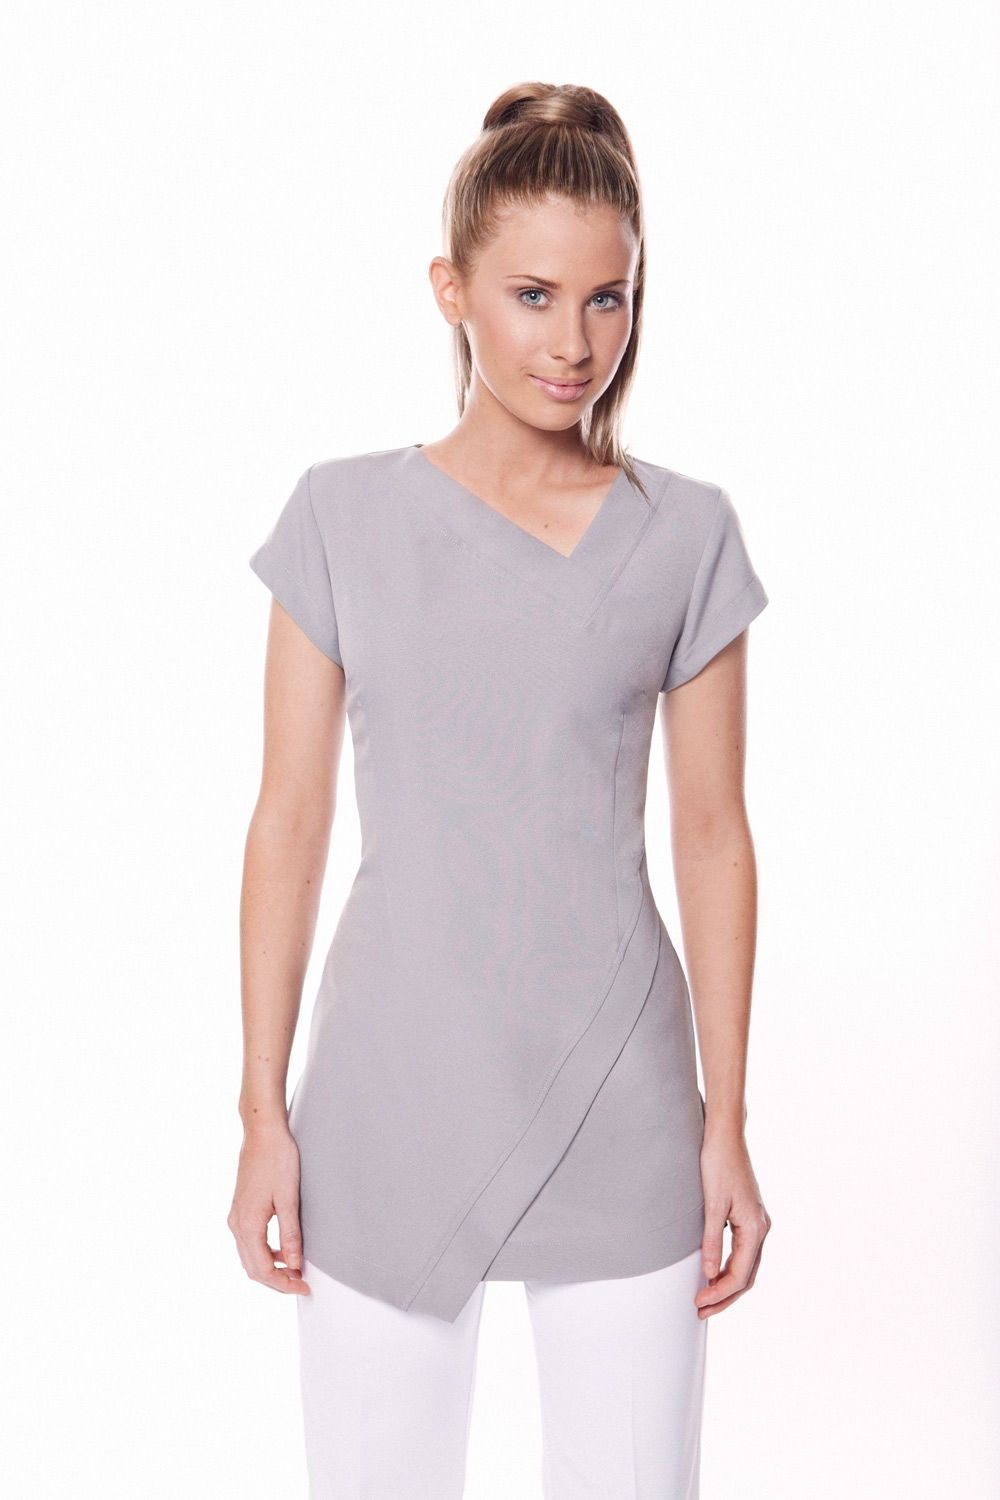 spa 14 tunic work uniform spa uniform beauty uniforms